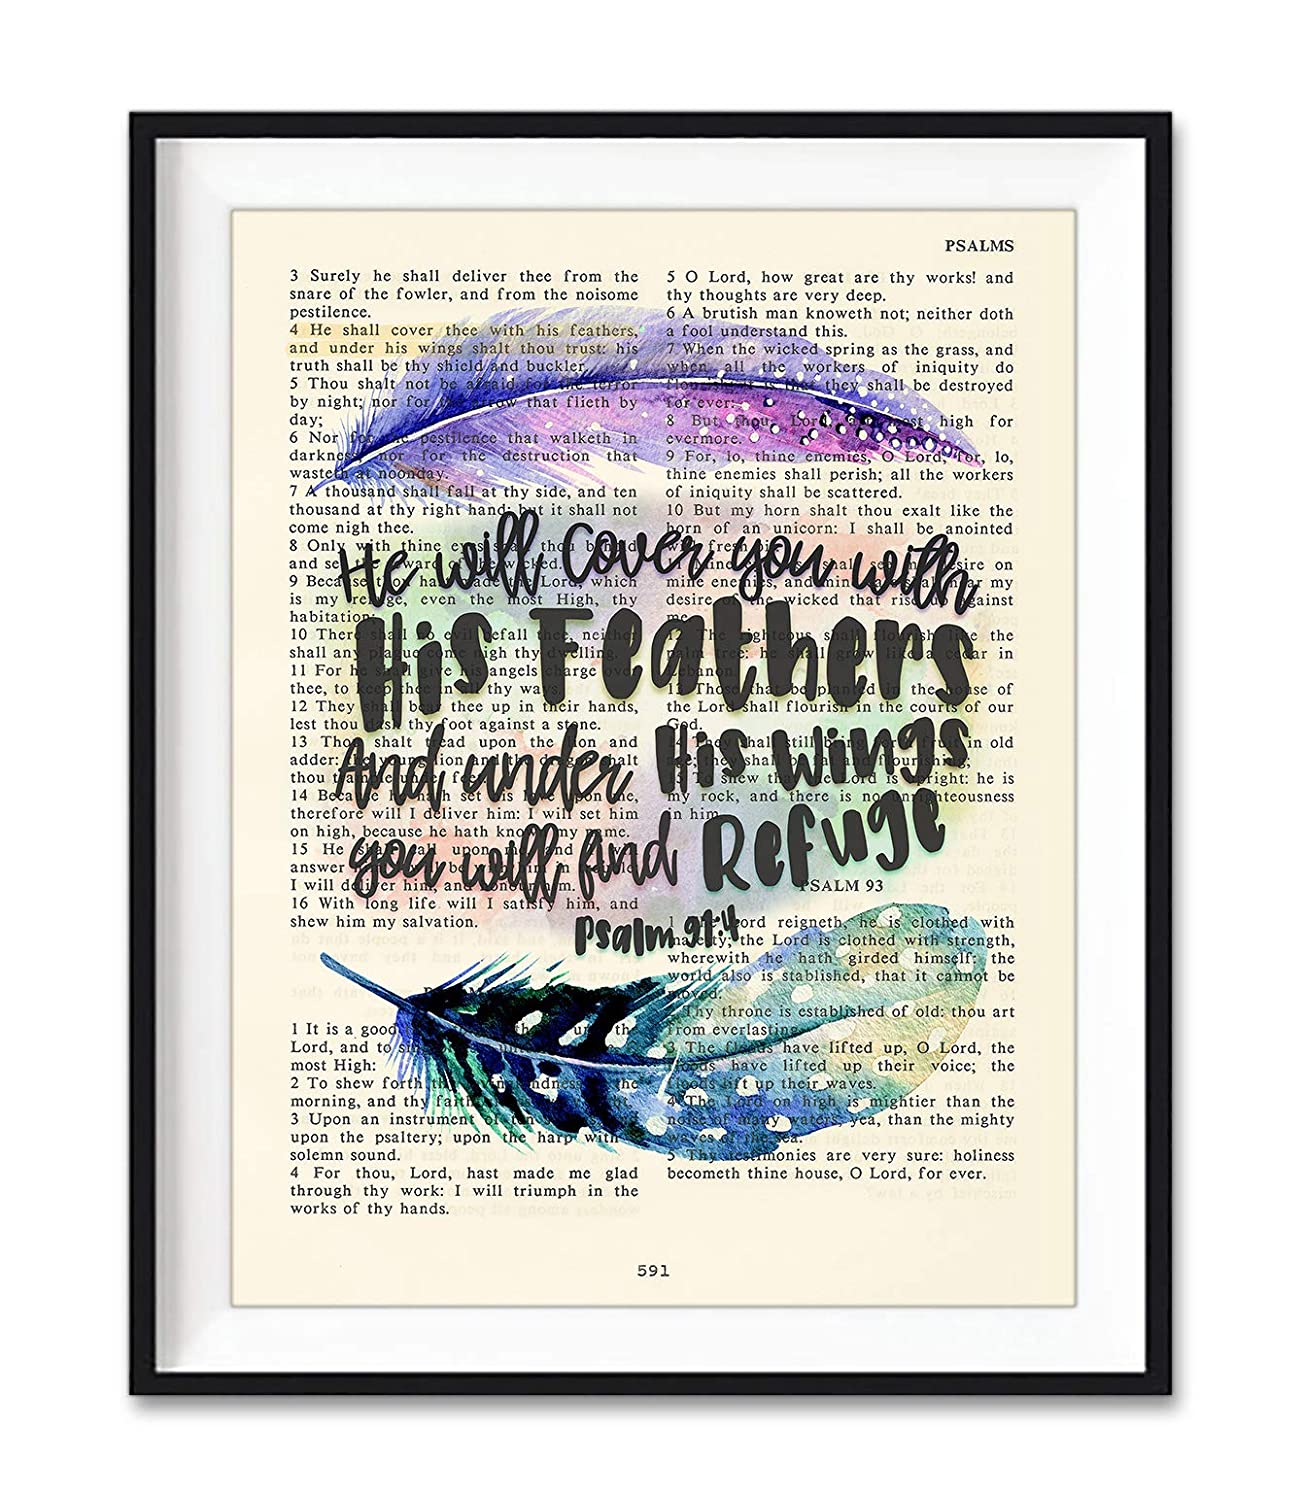 He Will Cover You with His Feathers, Psalm 91:4, Christian Art Print, Unframed, Vintage Bible Verse Wall Decor Poster, Inspirational Gift, 8x10 Inches